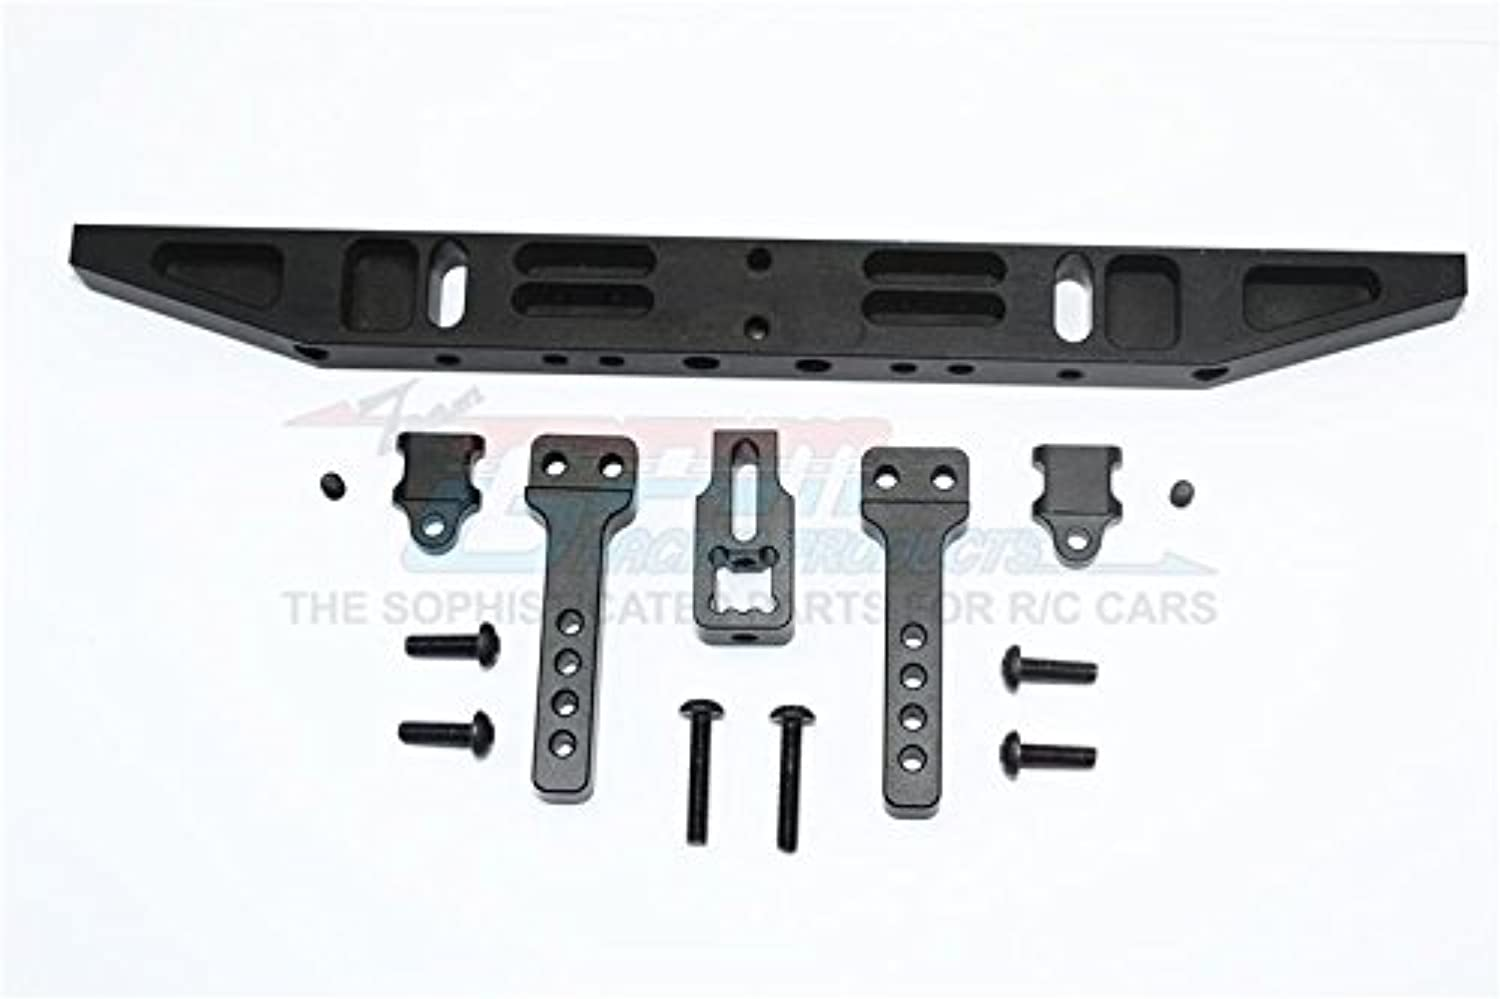 Traxxas TRX-4 Trail Defender Crawler Upgrade Parts Aluminium Rear Bumper With D-Rings (Classic) - 1 Set Black